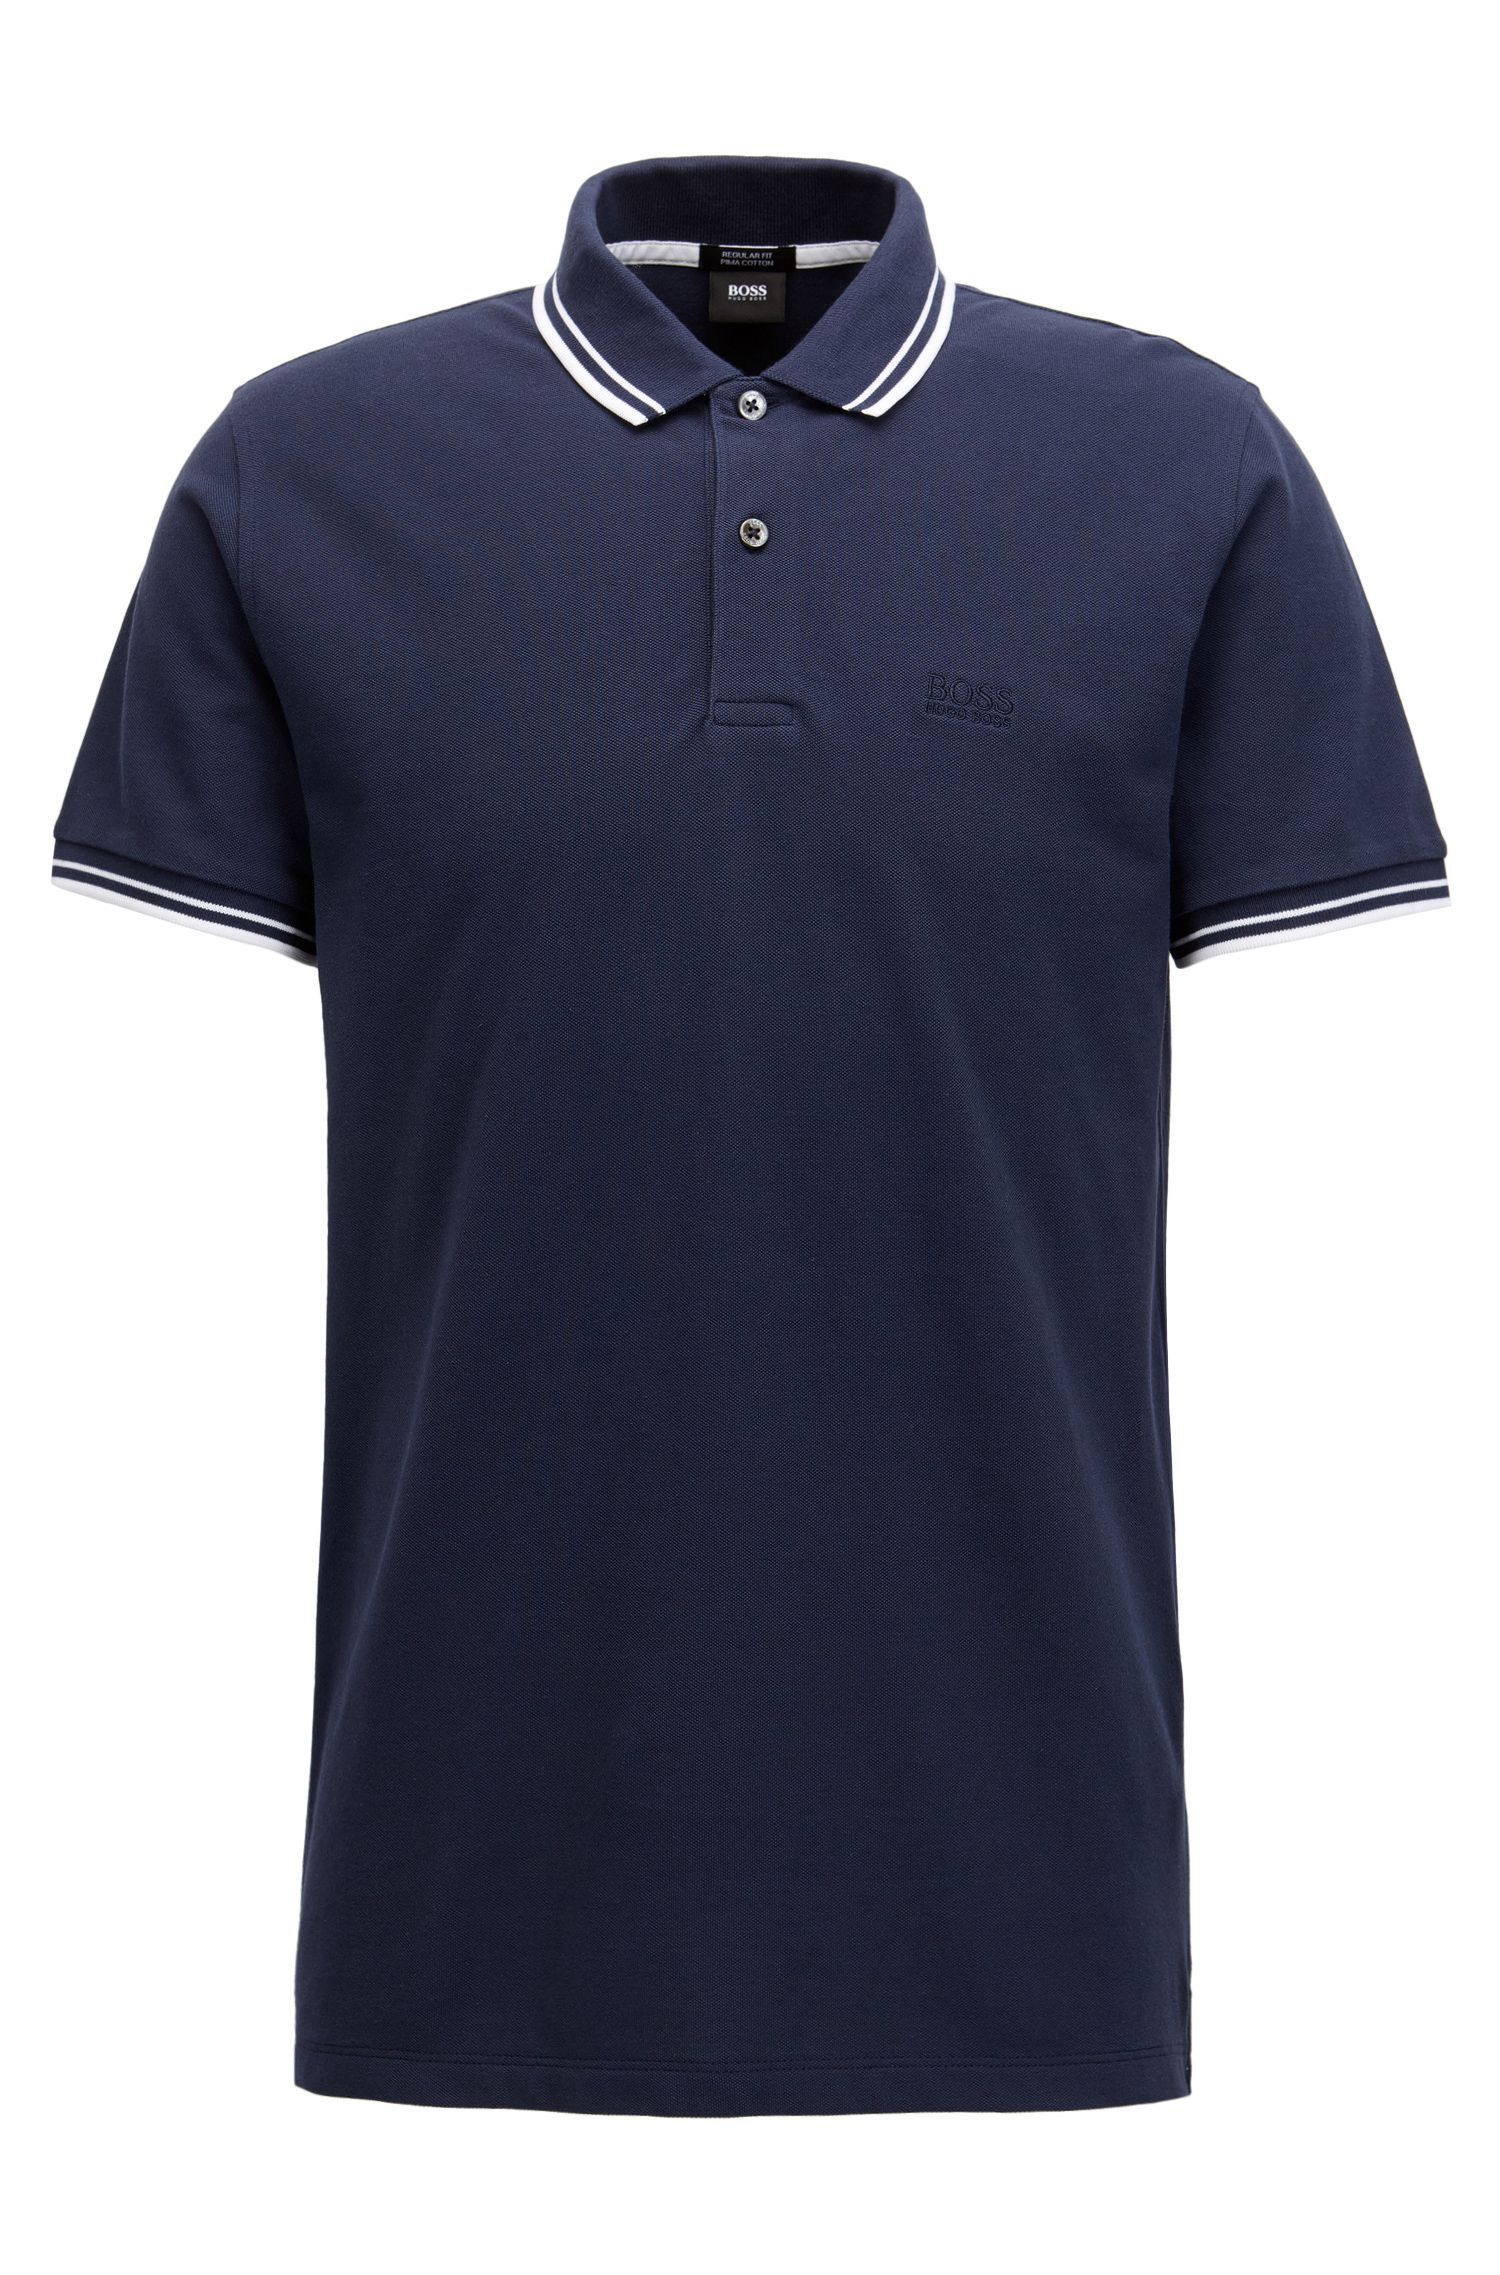 Polo regular fit en suave piqué de algodón